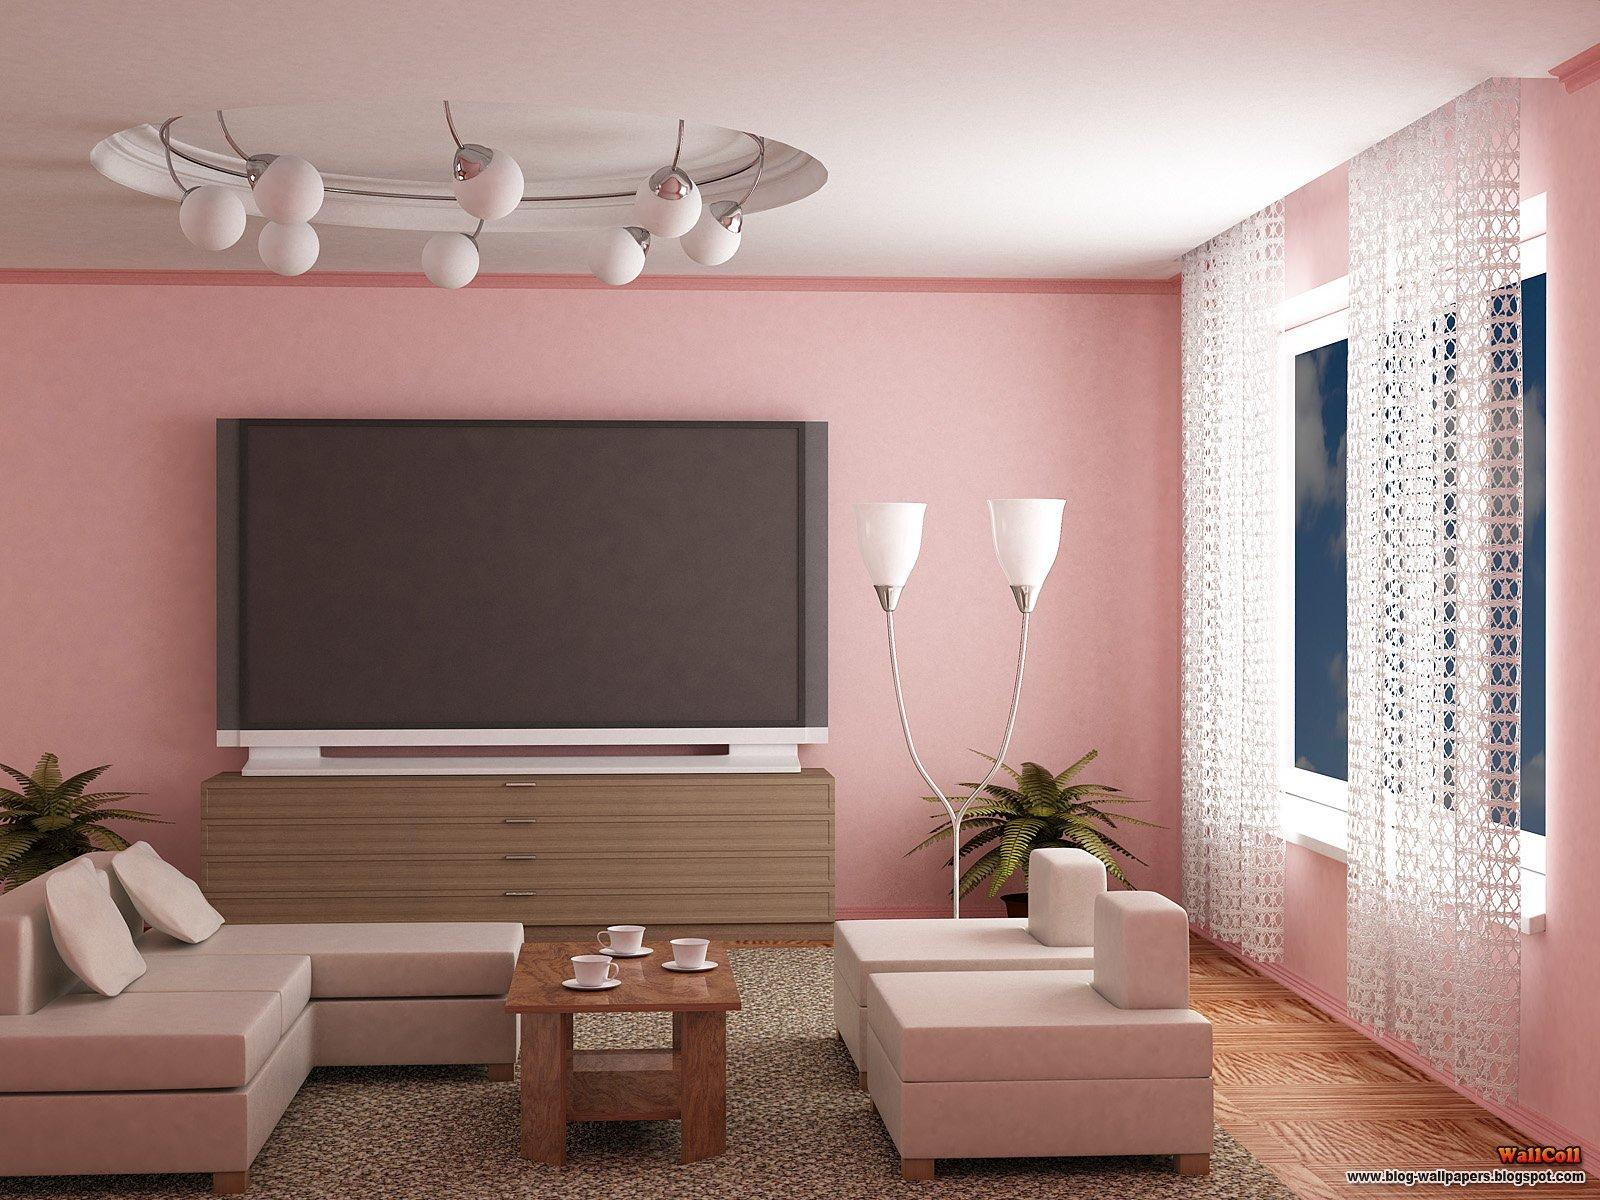 asian paints royale pink colour rooms photos ethiopia interior furniture. Black Bedroom Furniture Sets. Home Design Ideas